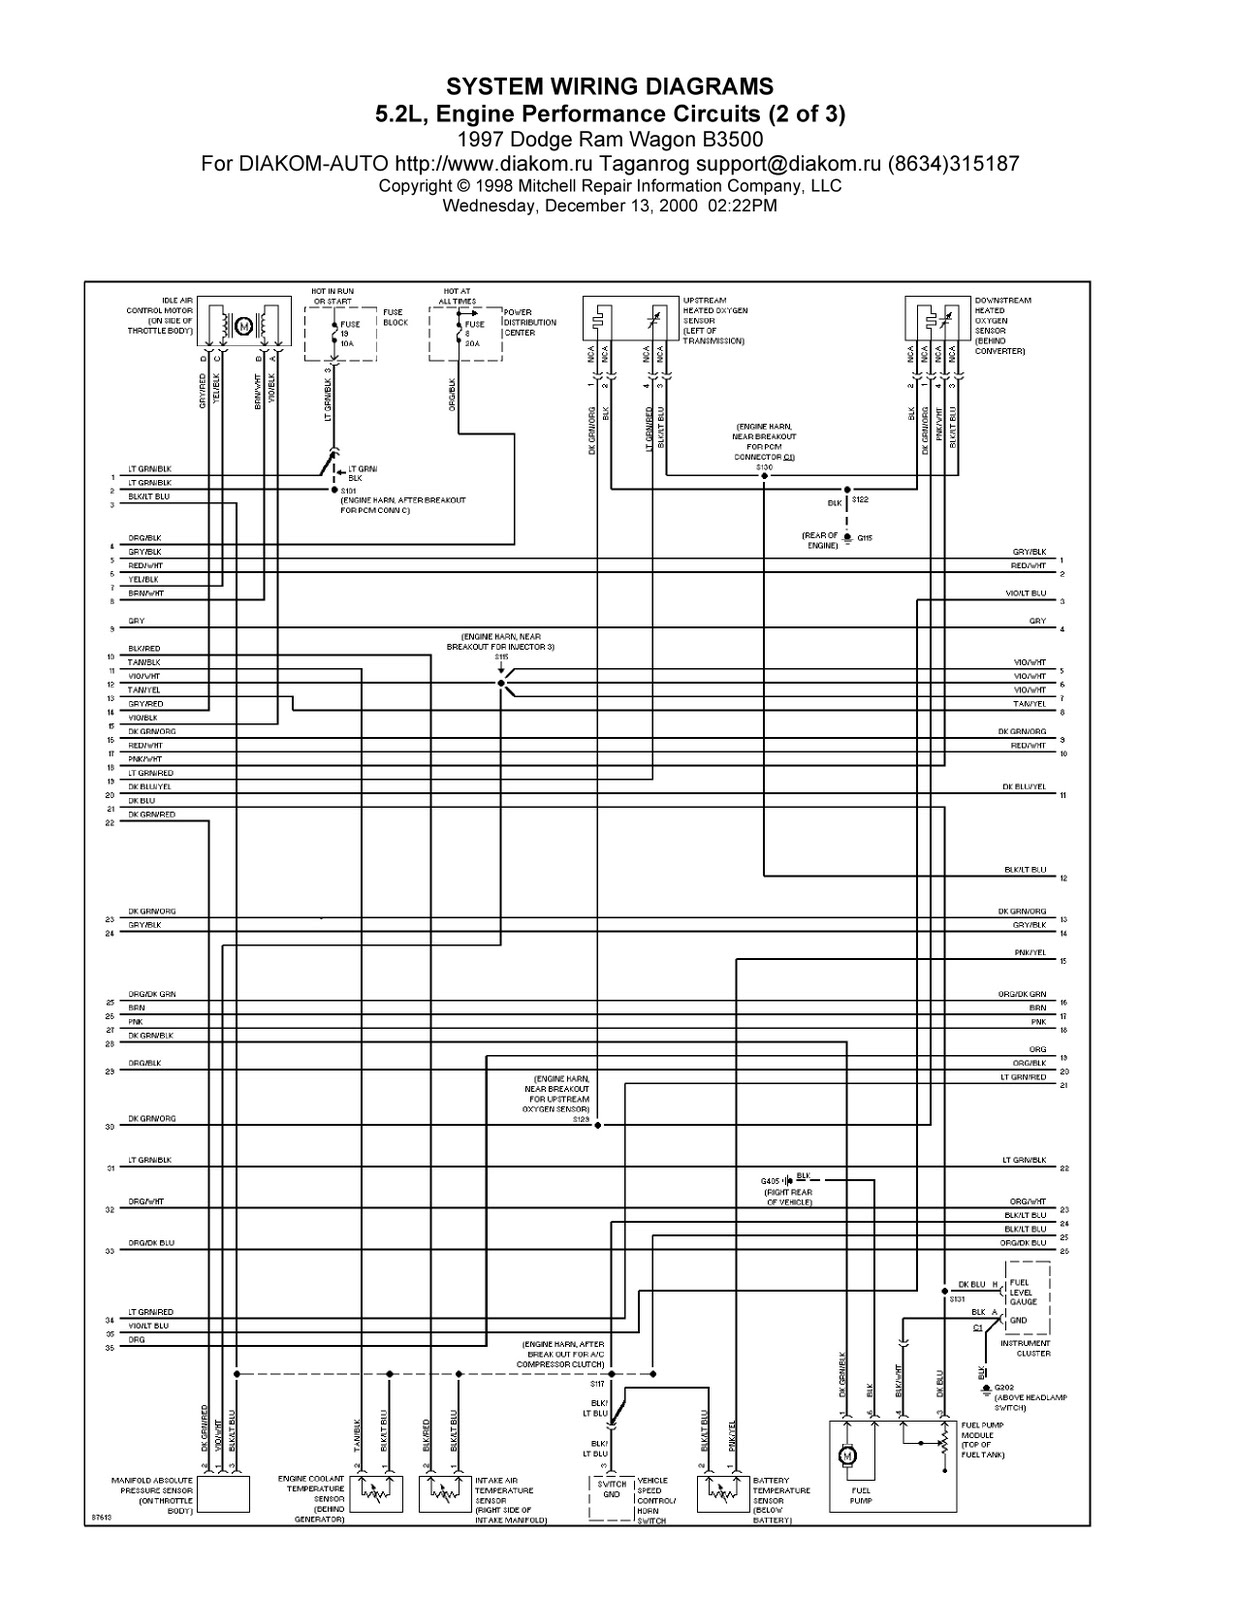 dodge 2500 trailer wiring diagram 1997 dodge ram wagon b3500 system wiring diagram 5,2l ...